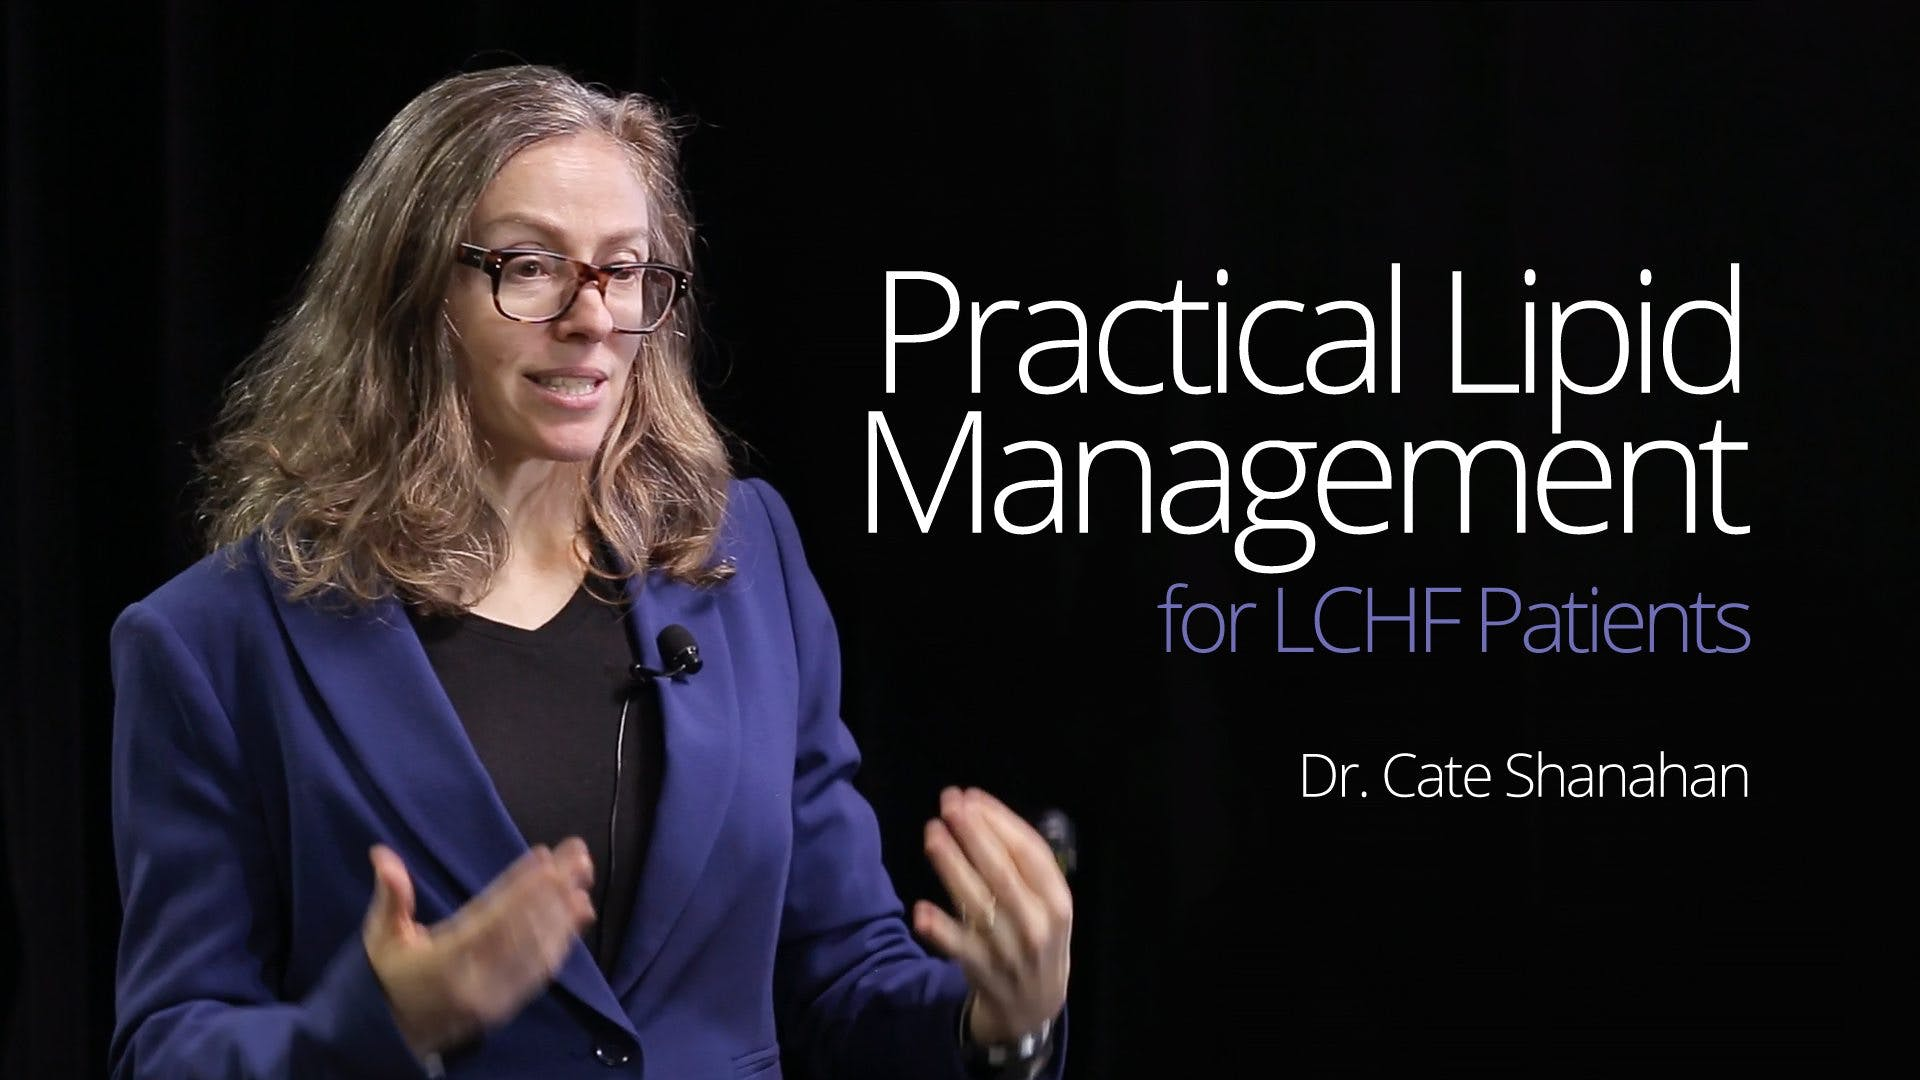 Practical Lipid Management – Dr. Cate Shanahan